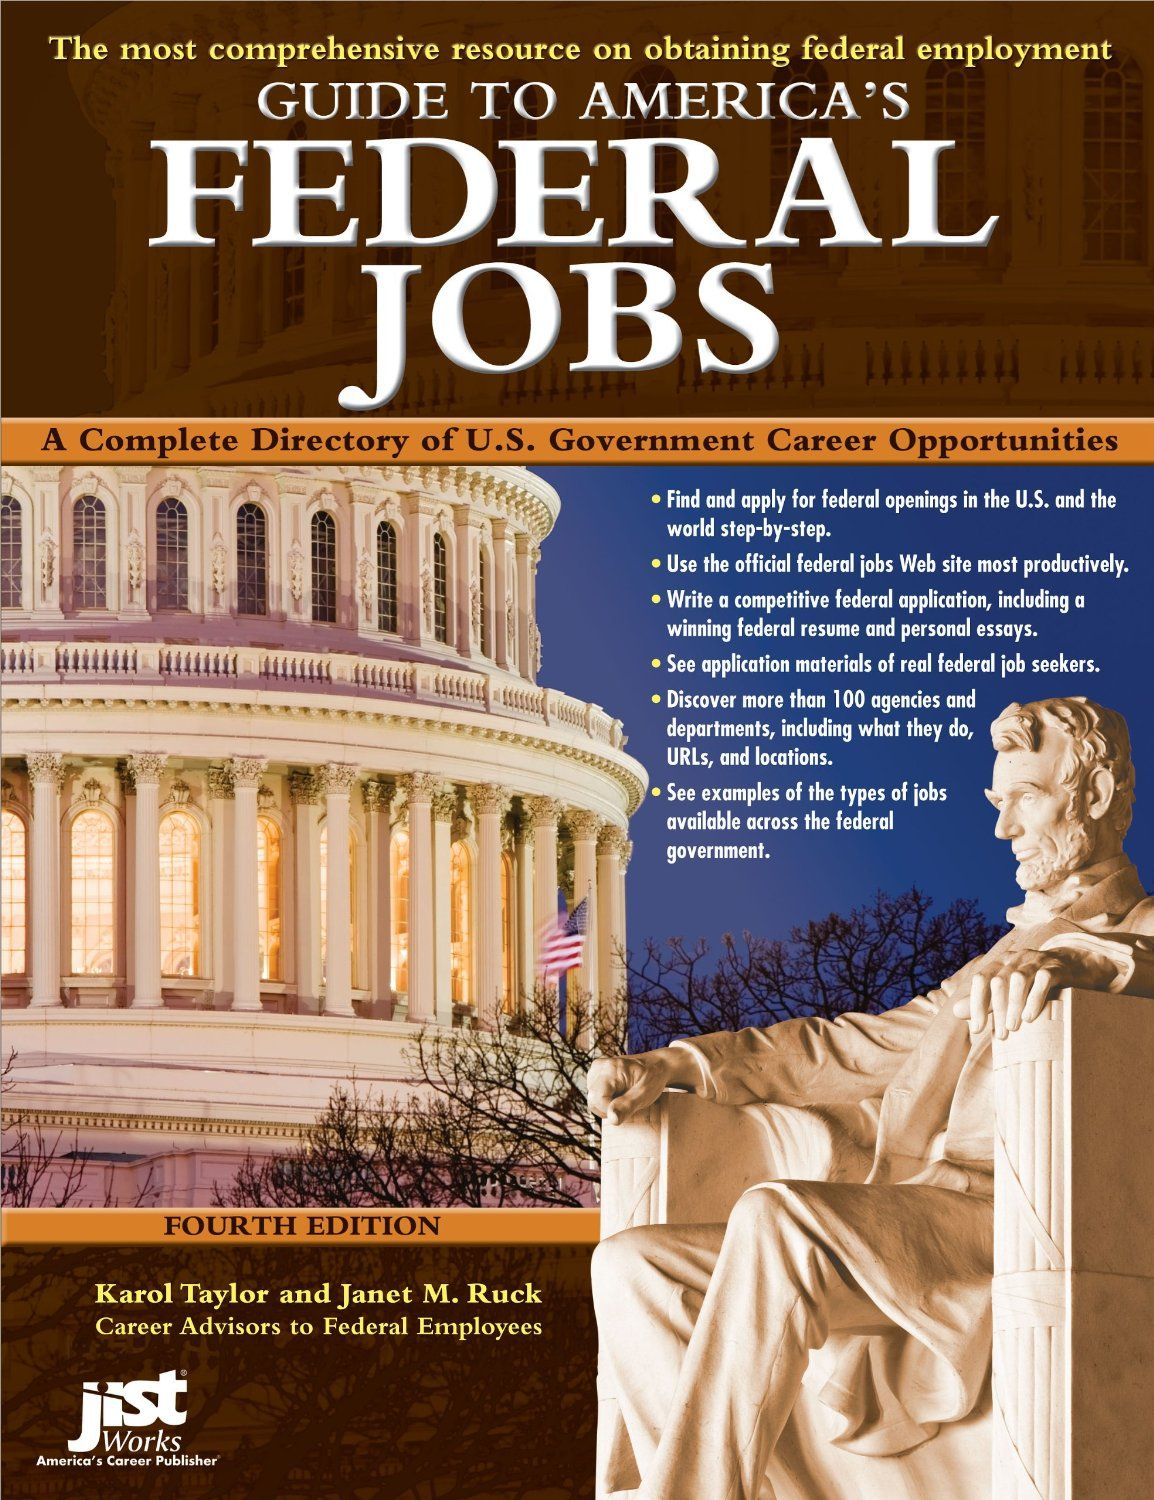 Guide to Americau0027s Federal Jobs Guide to